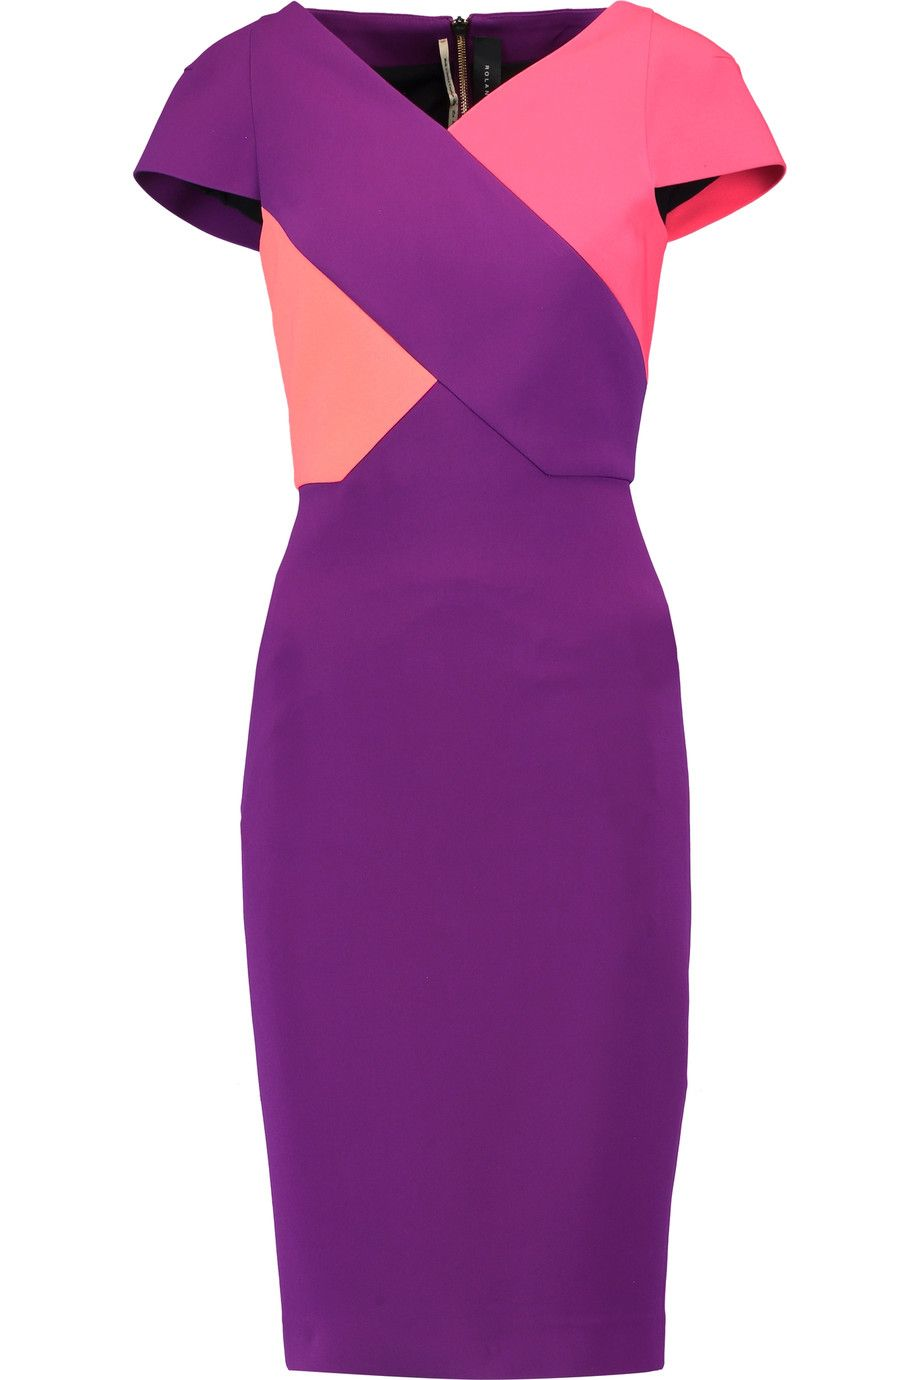 ROLAND MOURET . #rolandmouret #cloth #dress | Roland Mouret ...